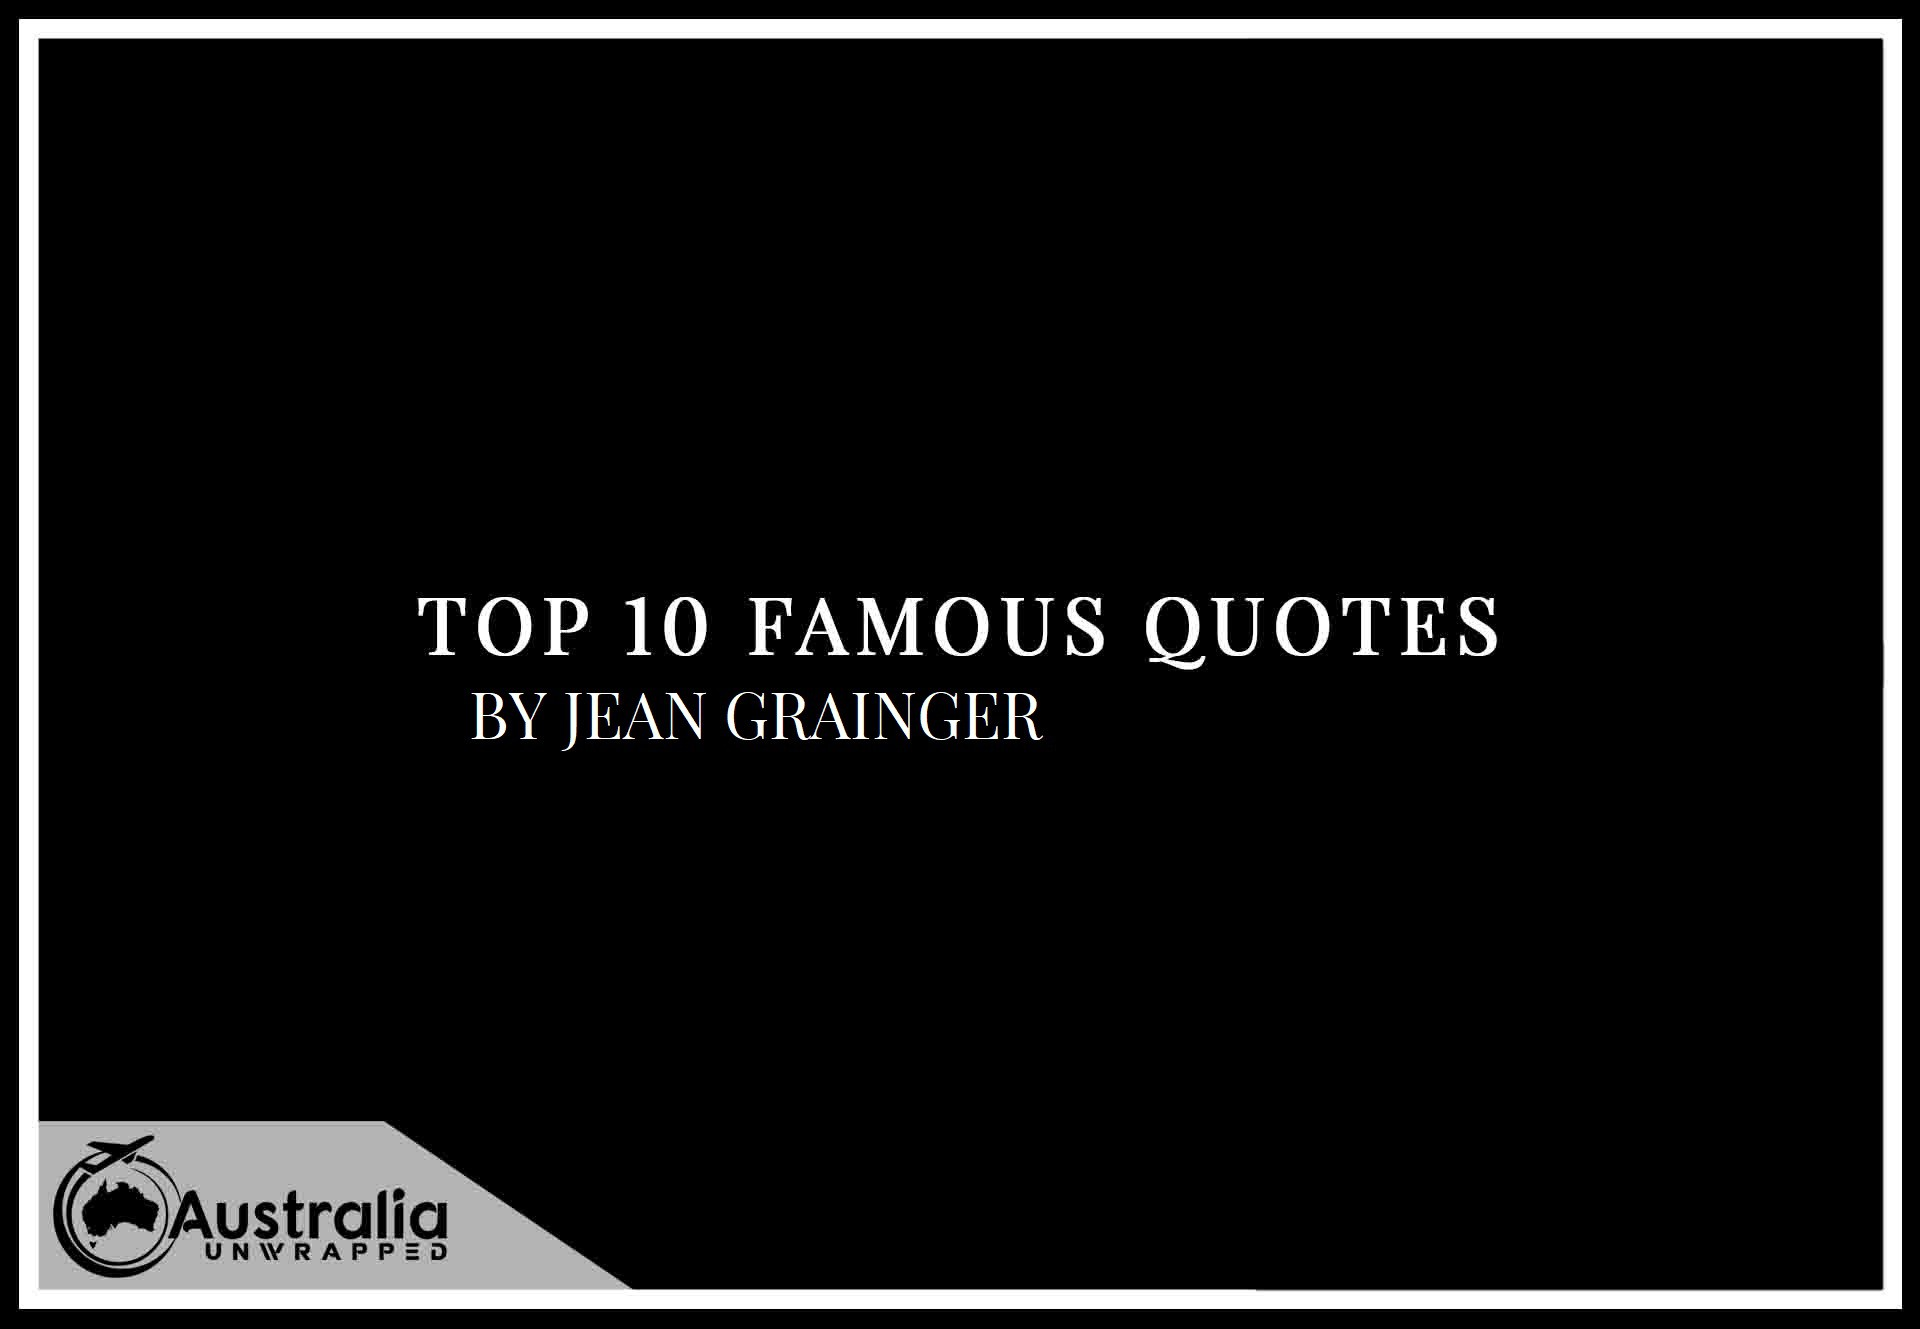 Top 10 Famous Quotes by Author Jean Grainger